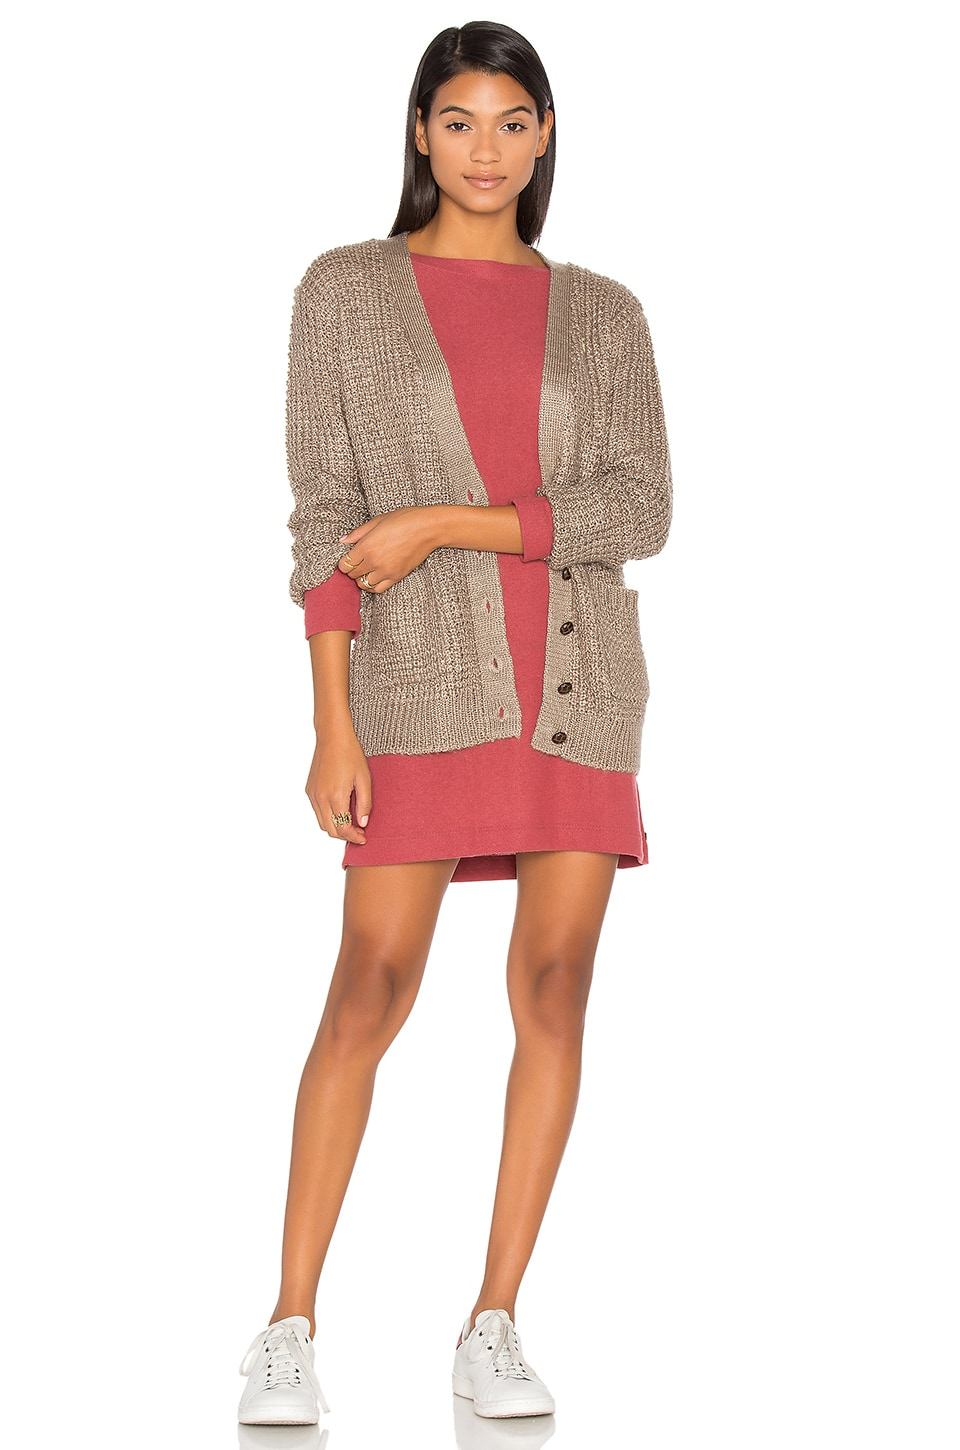 Barnette Cardigan by Obey